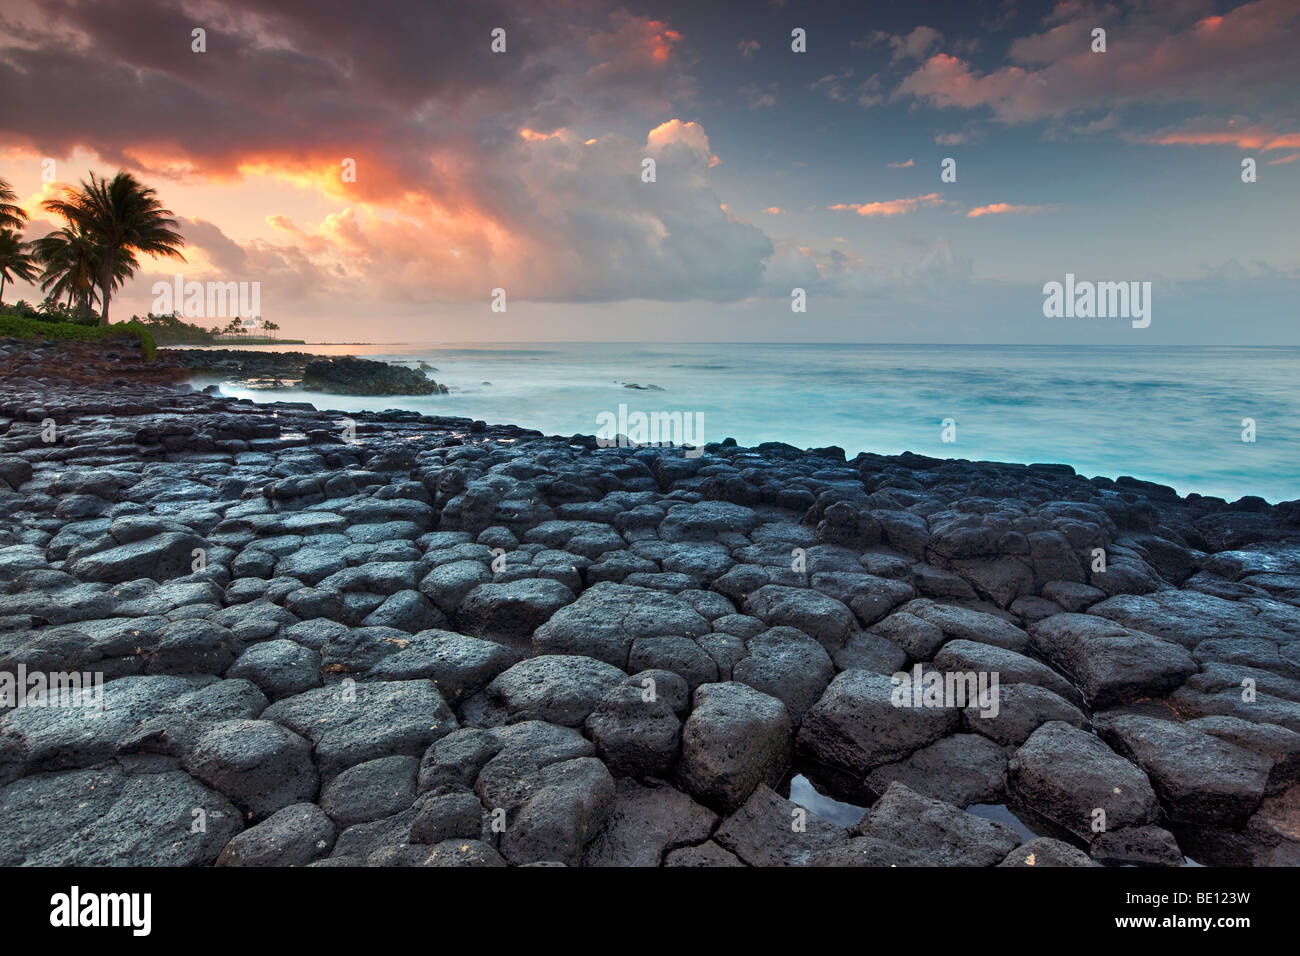 Basalt columns (columnar jointing) and sunrise, Poipu. Kauai, Hawaii. - Stock Image